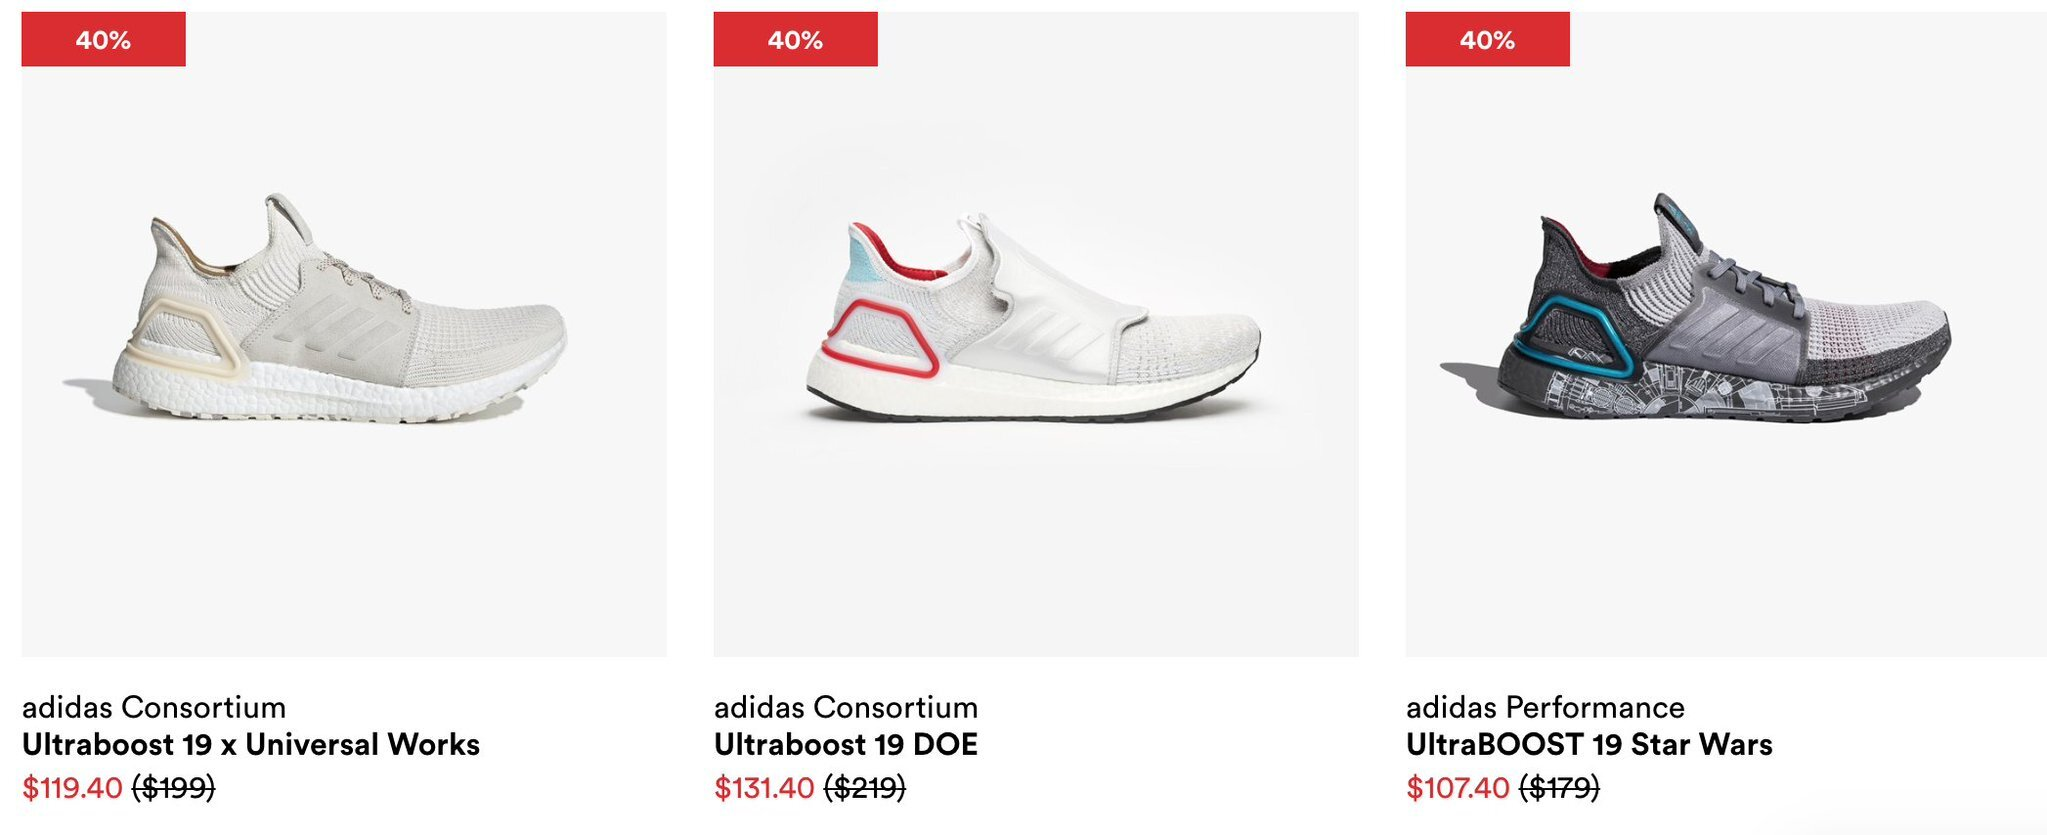 STEALS! 40% off recently released Ultra